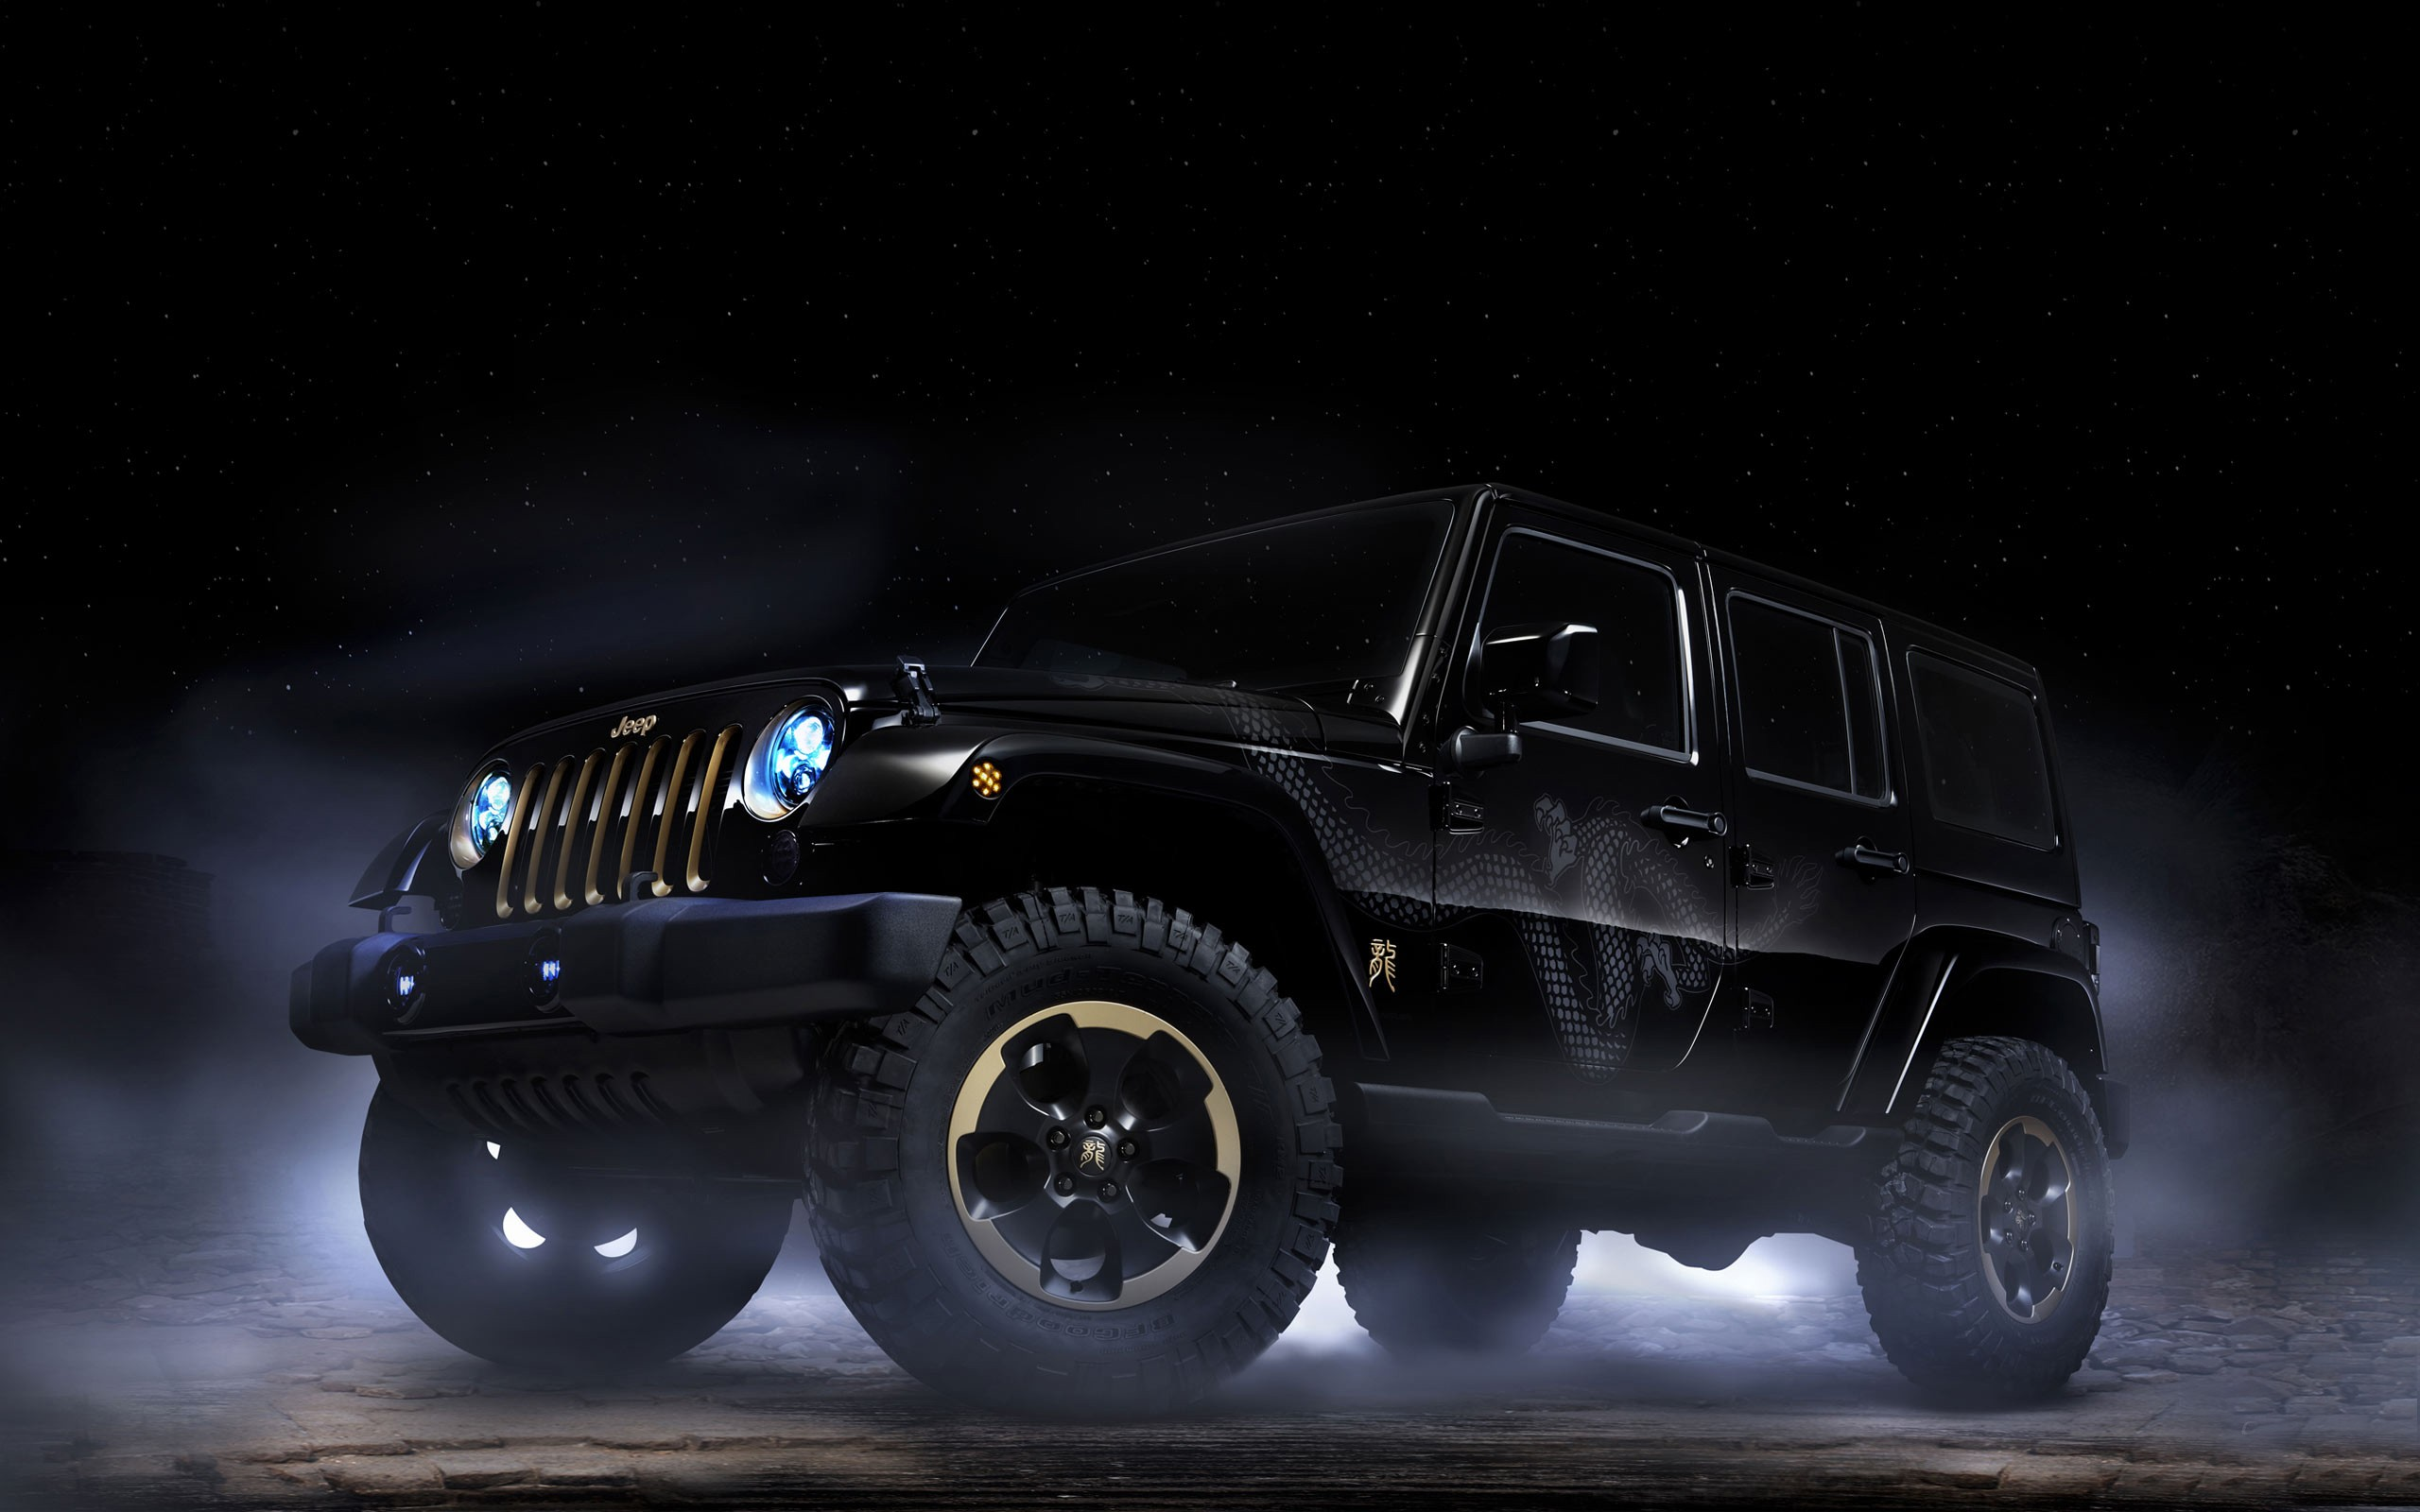 Jeep Car Images Hd: Jeep Wrangler Dragon Concept 2 Wallpaper